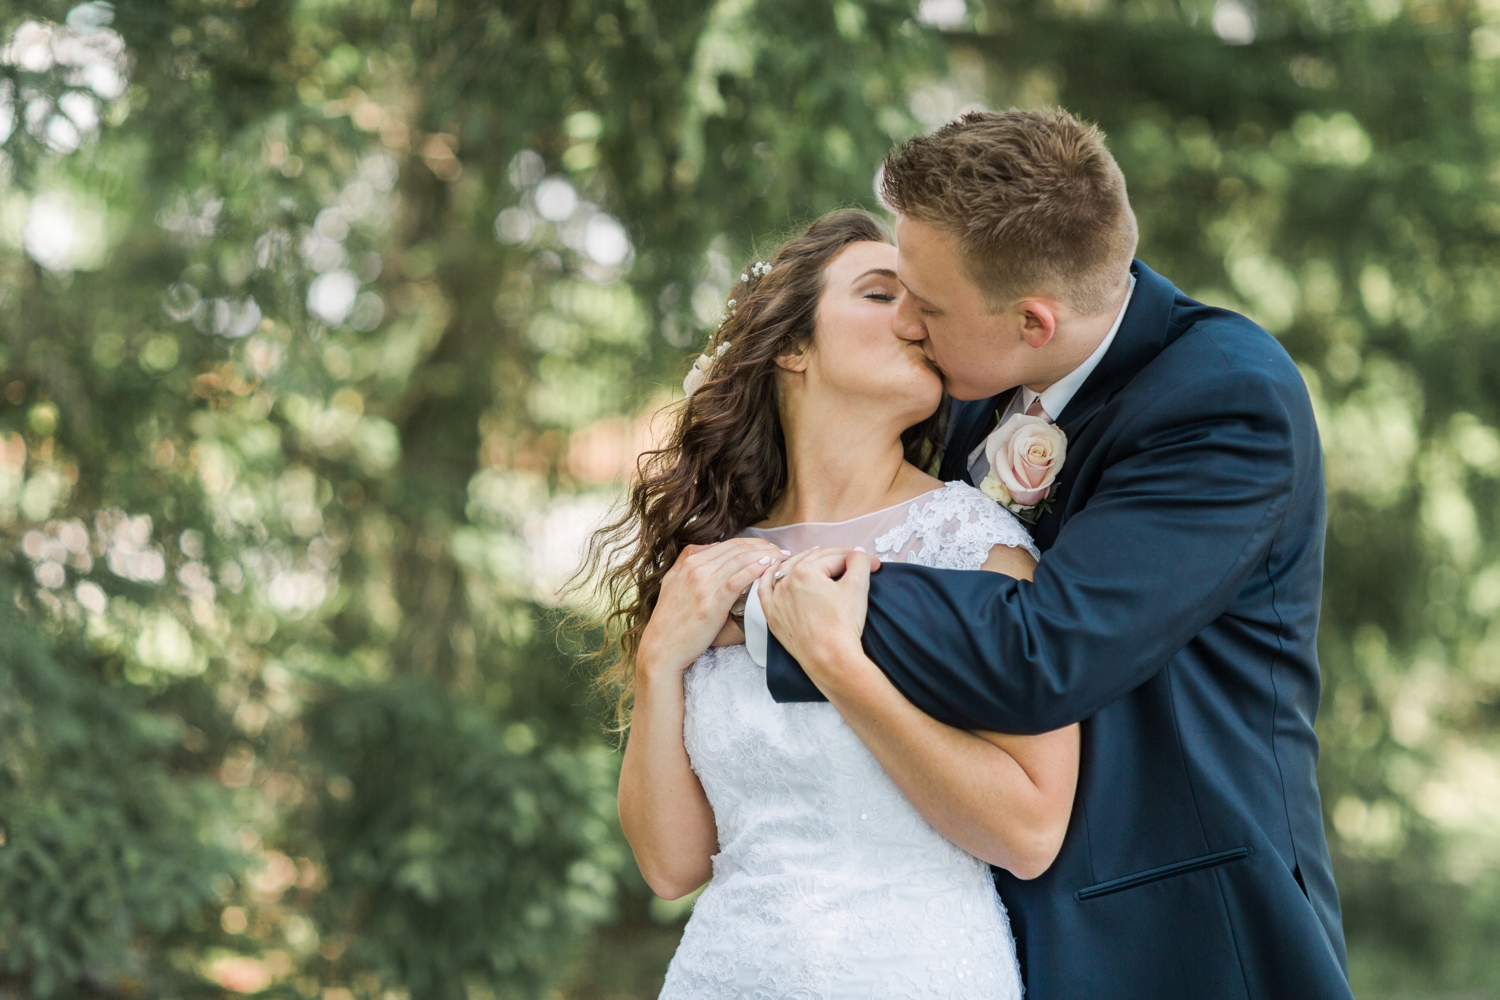 Community_Life_Center_Indianapolis_Indiana_Wedding_Photographer_Chloe_Luka_Photography_6908.jpg